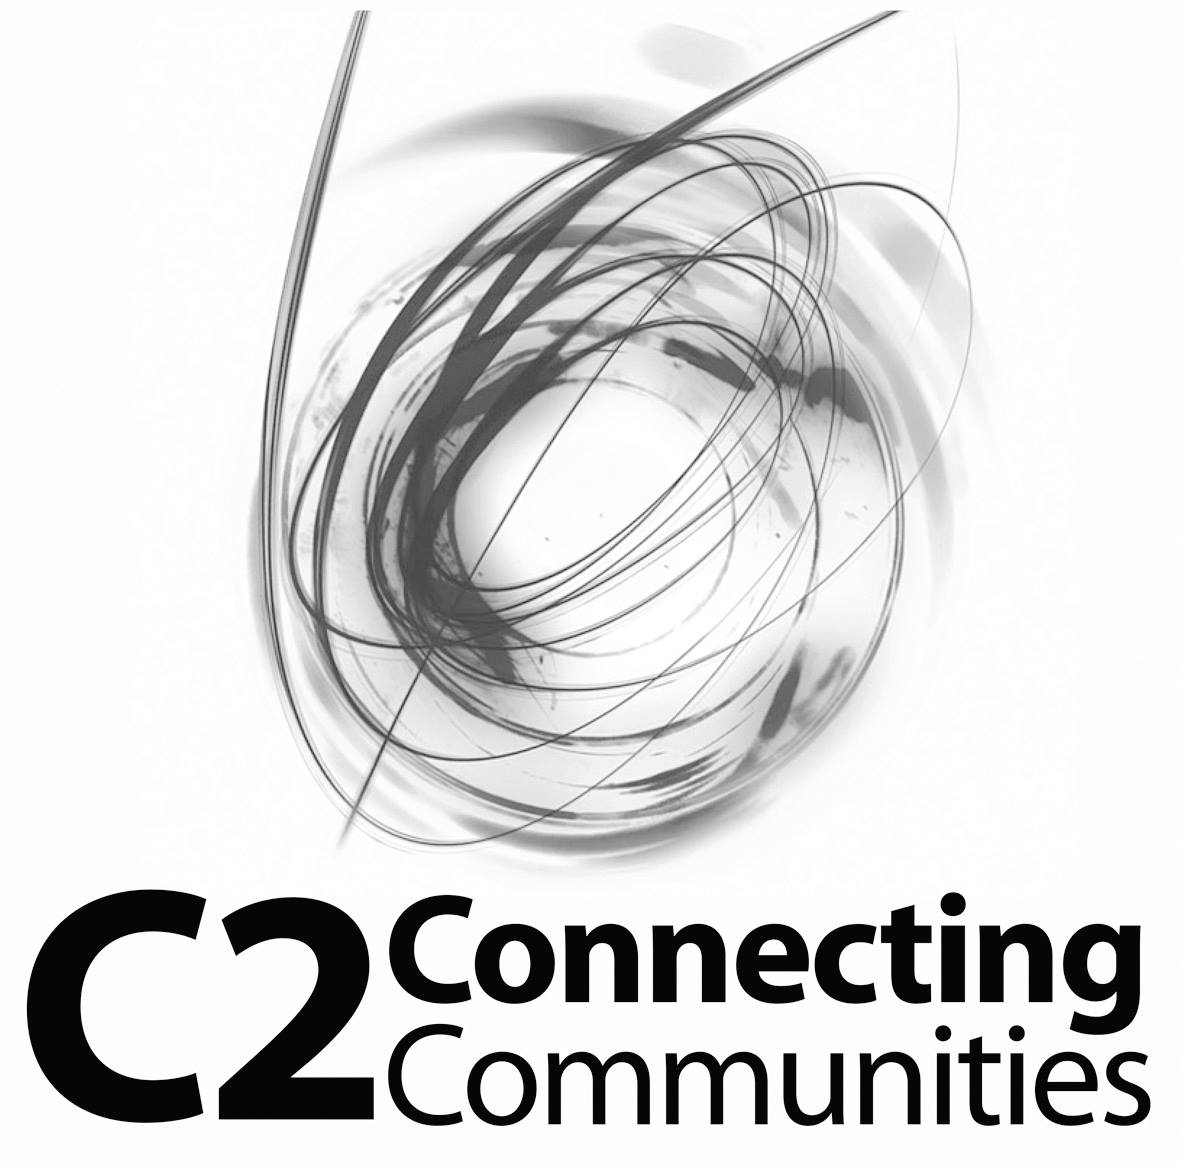 C2 National Network of Connected Communities